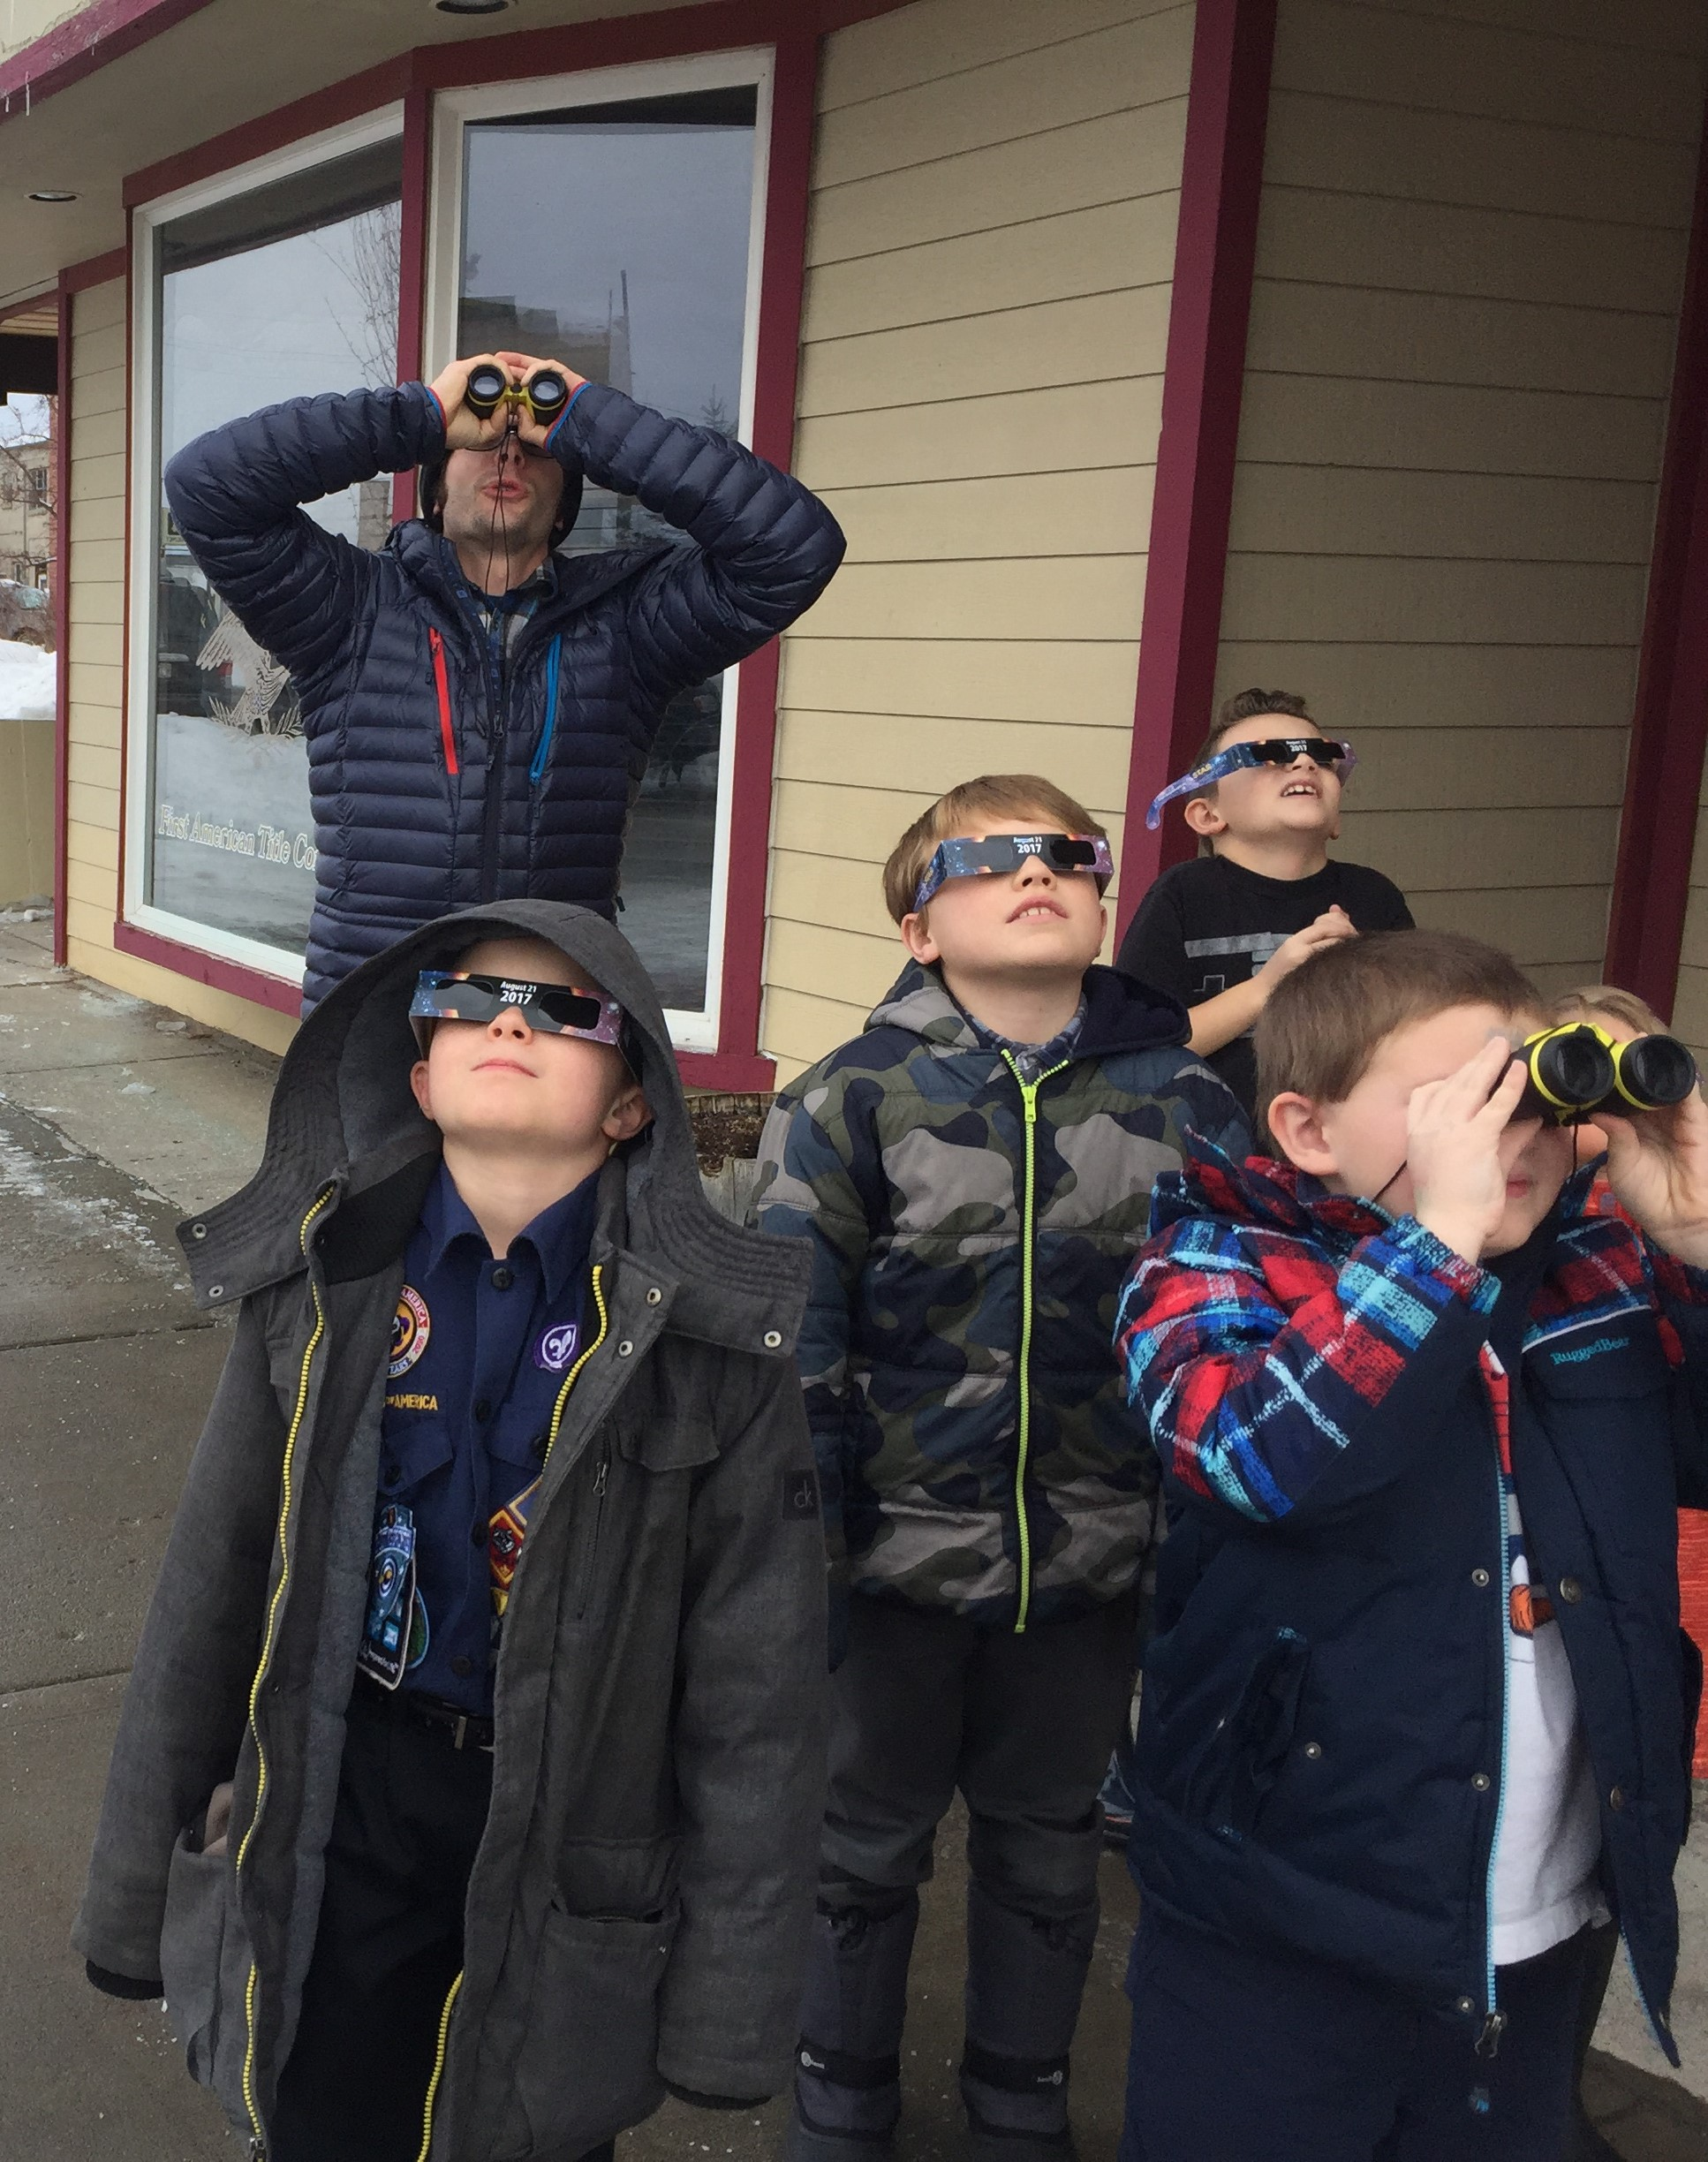 A Boy Scout Troop practices using safe solar viewing glasses and special binoculars in preparation for the solar eclipse. Image courtesy of Valley of the Tetons Library.